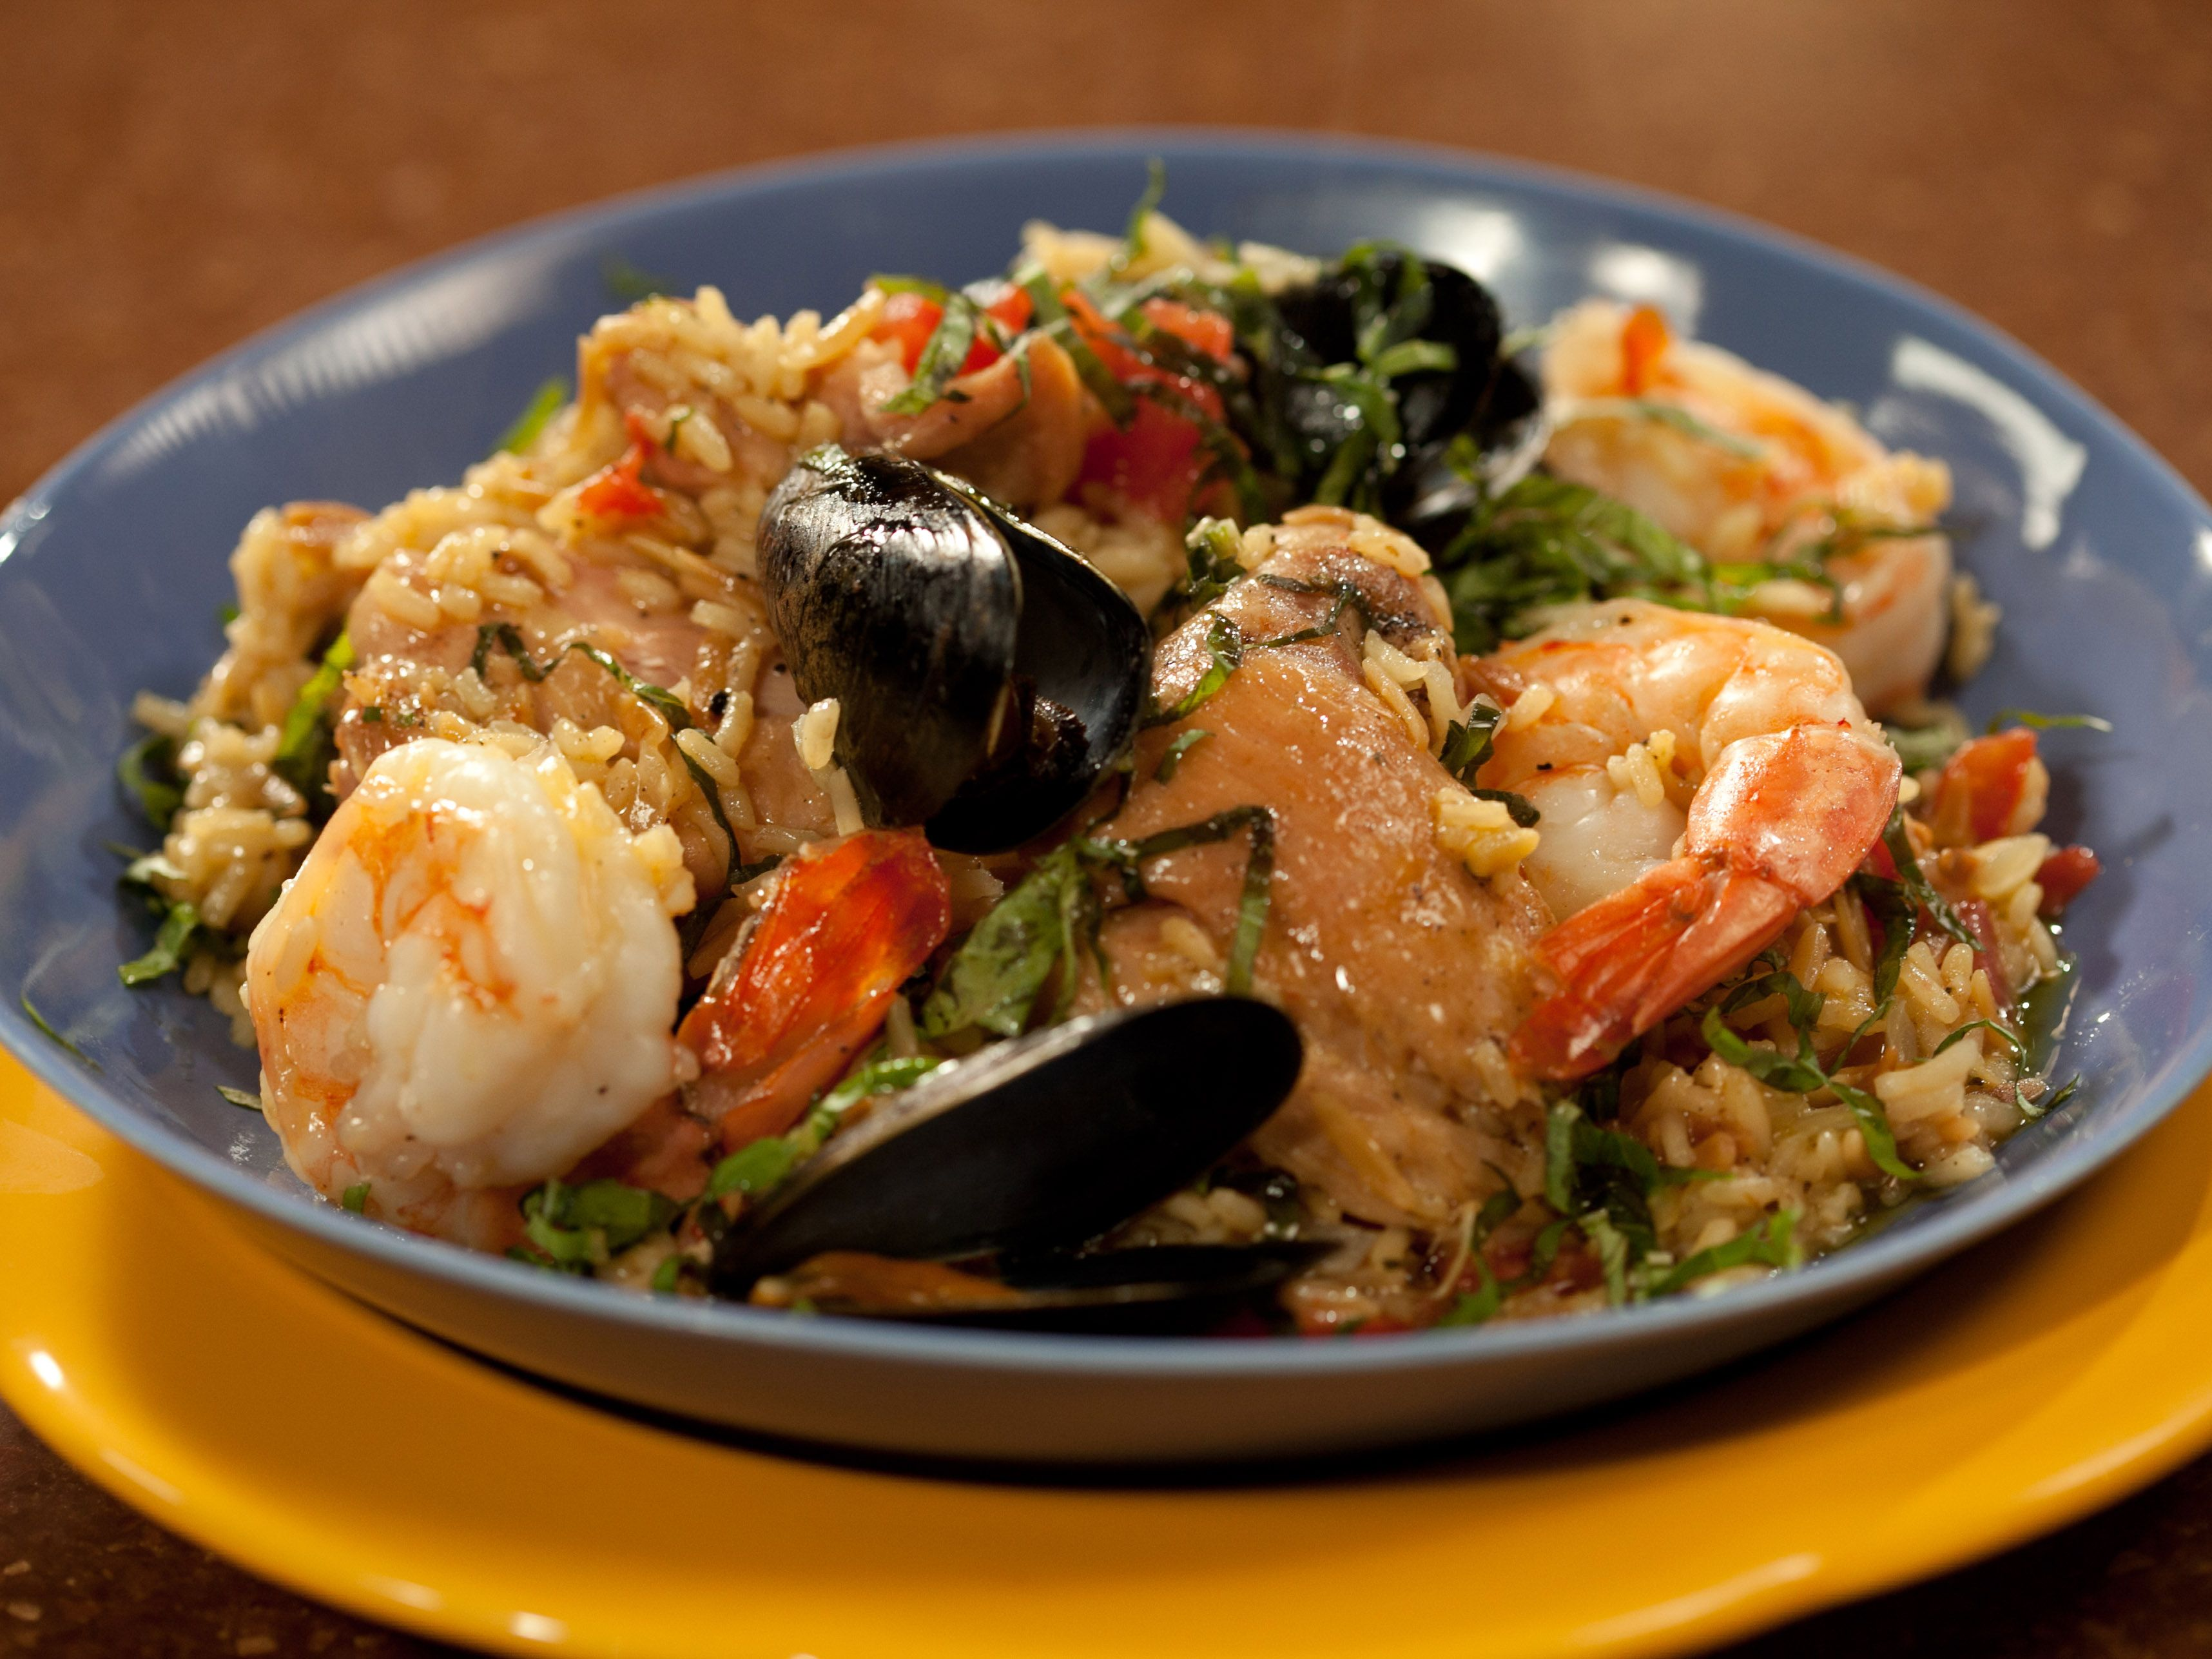 Venetian style paella recipe paella recipes and foods forumfinder Gallery